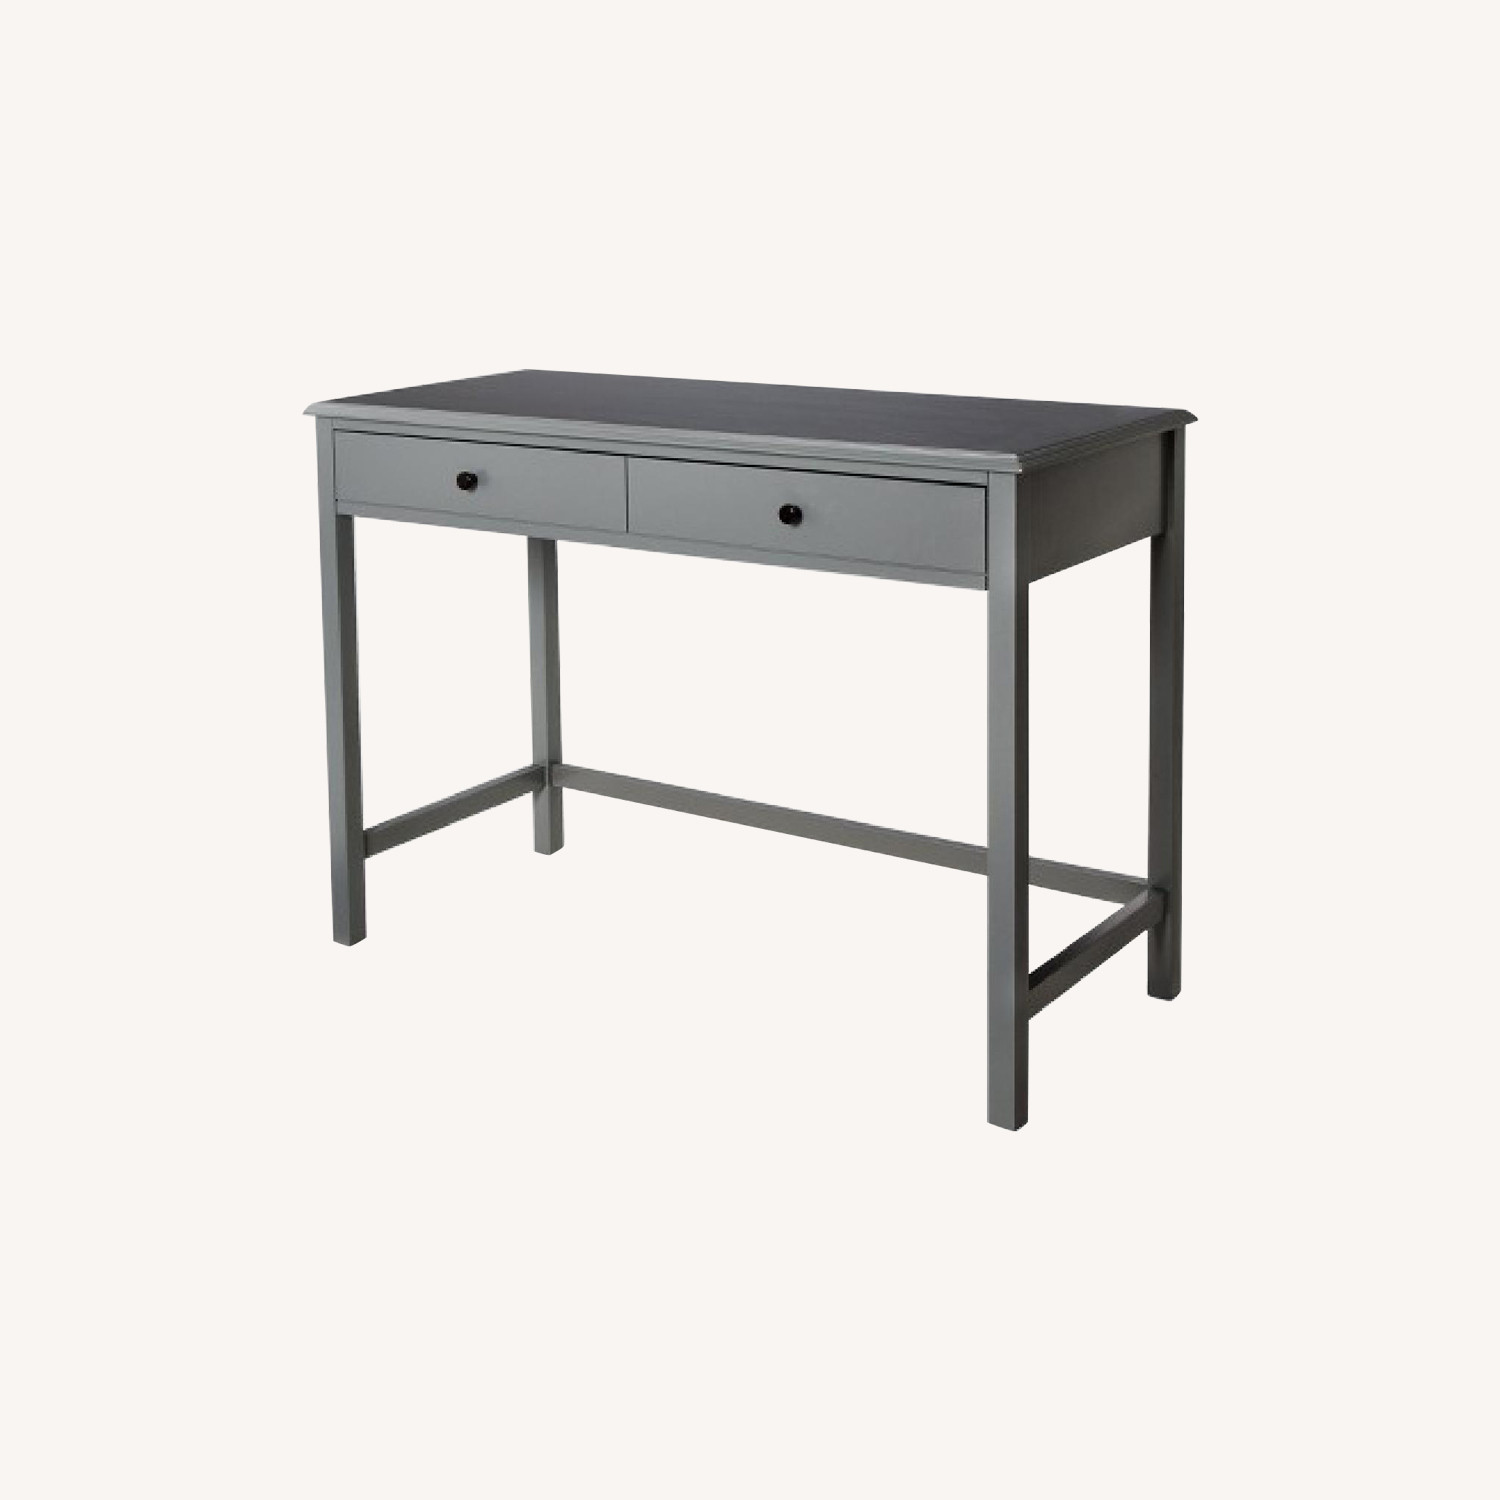 Target Windham Desk in Gray